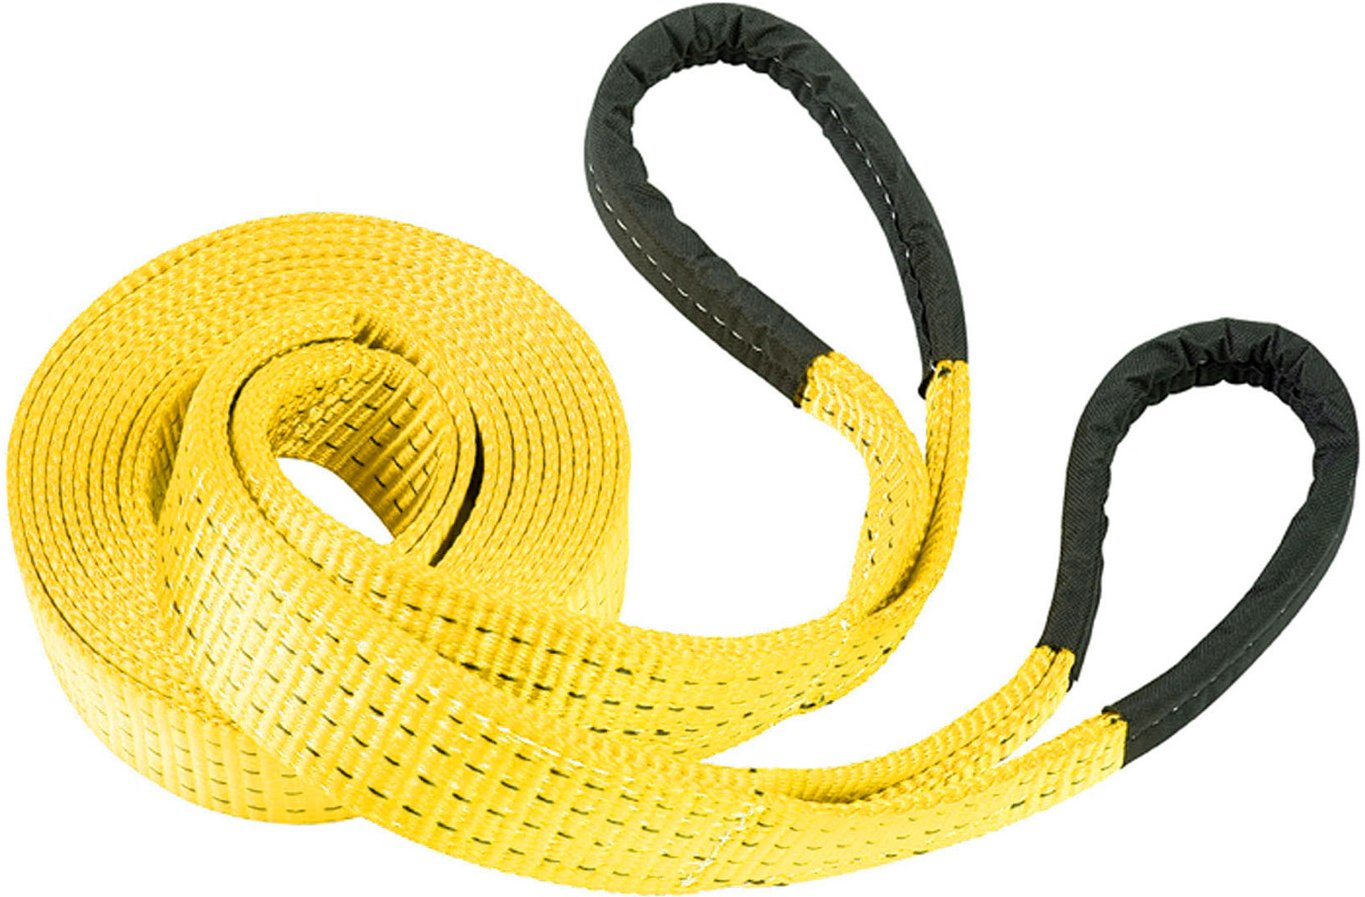 RPS Outdoors TOW-113 Deluxe Recovery Tow Strap with 20,000 lb Weight Capacity, Yellow (4 in x 30 ft) by RPS Outdoors